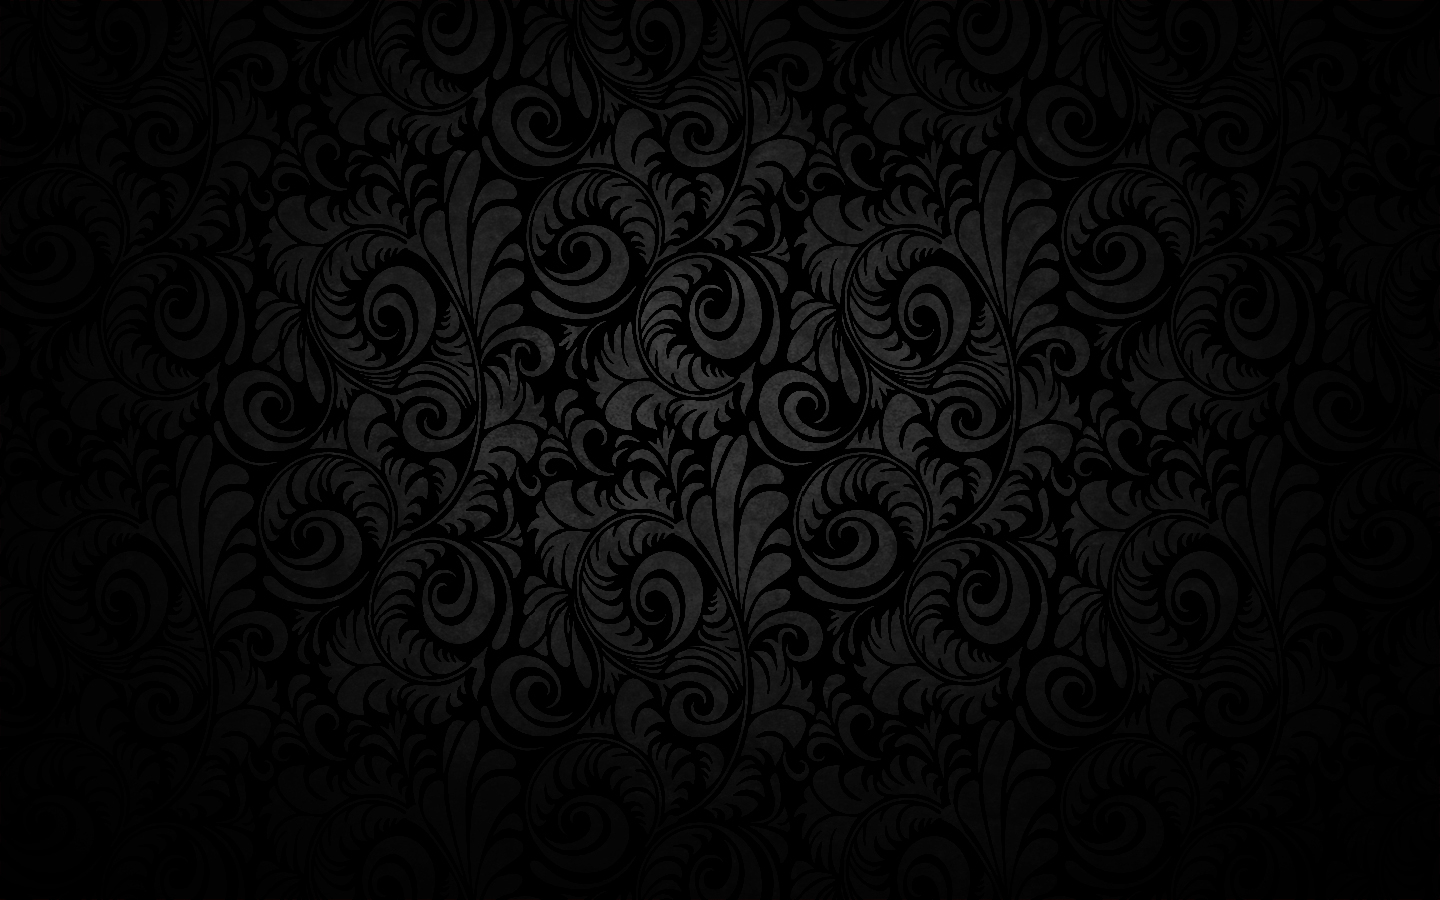 HD Desktop Wallpapers: Black white wallpaper, black on white wallpaper